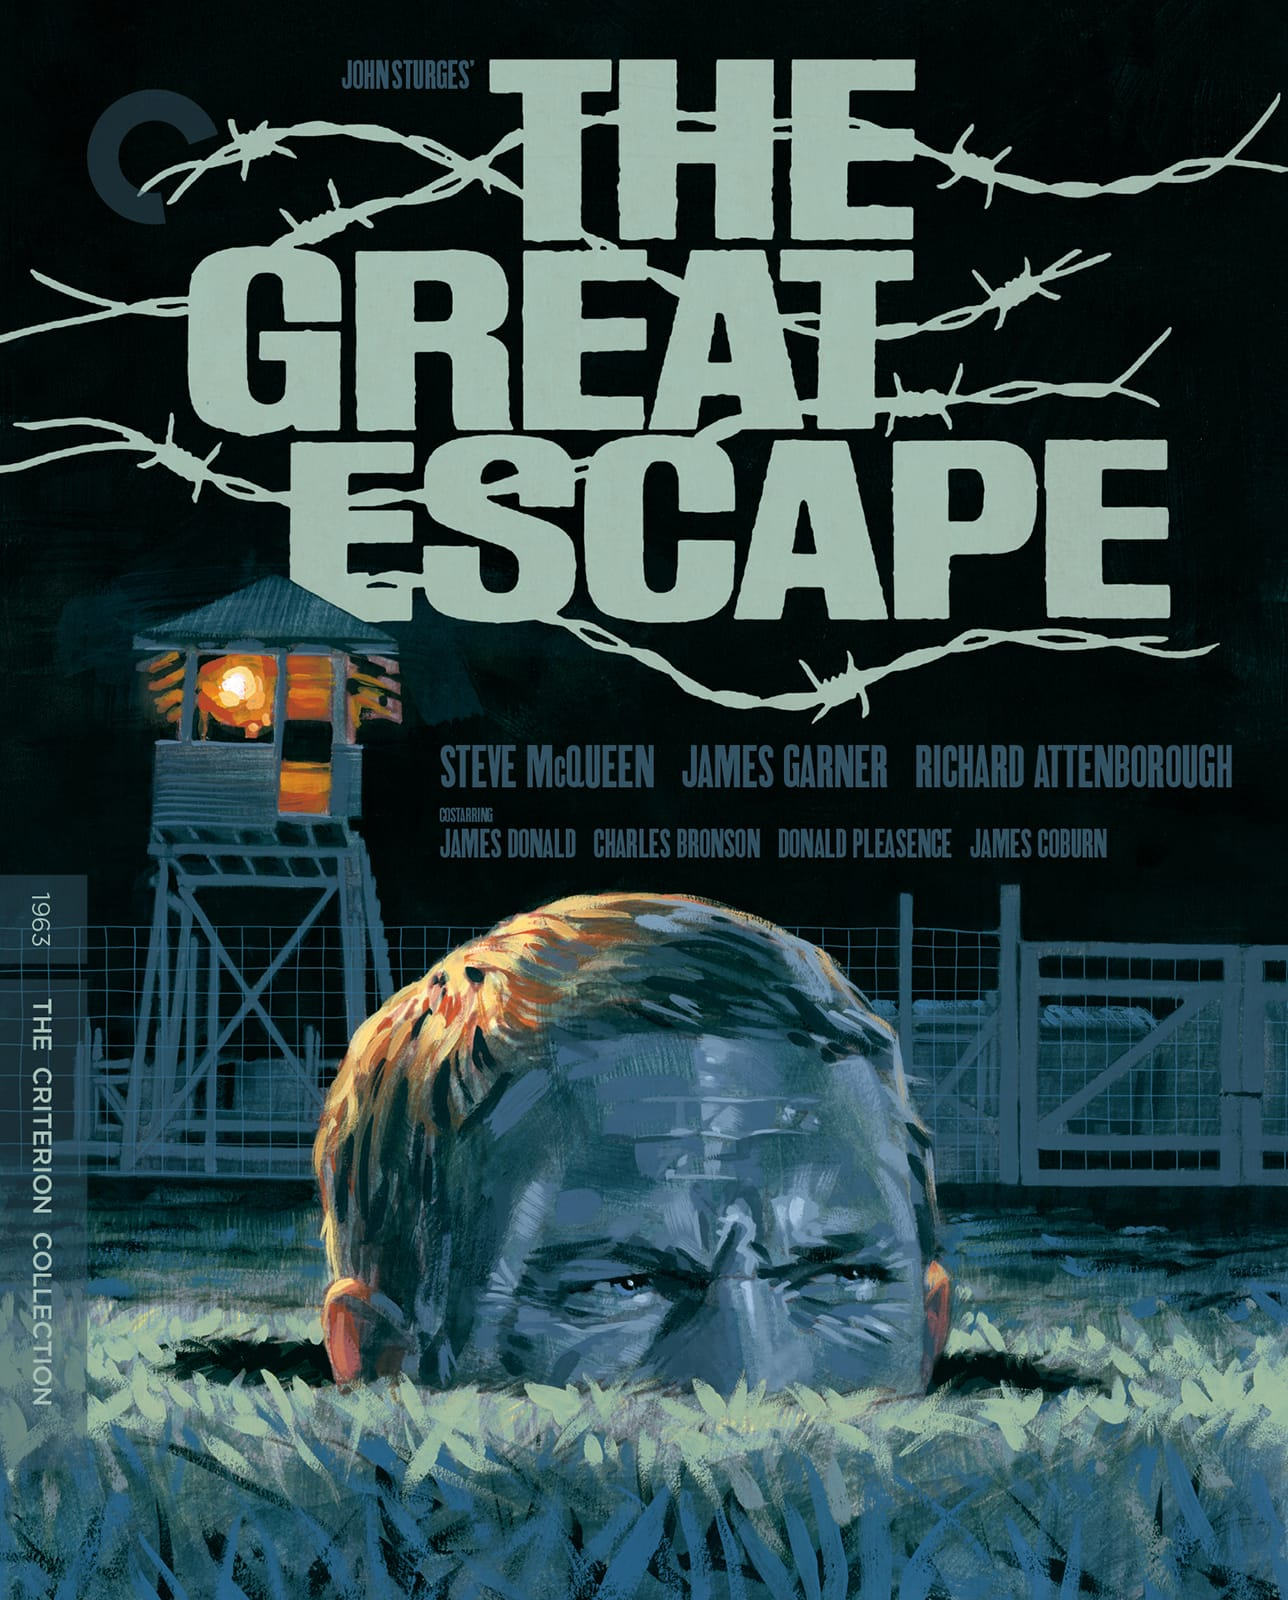 The Great Escape (1963) | The Criterion Collection